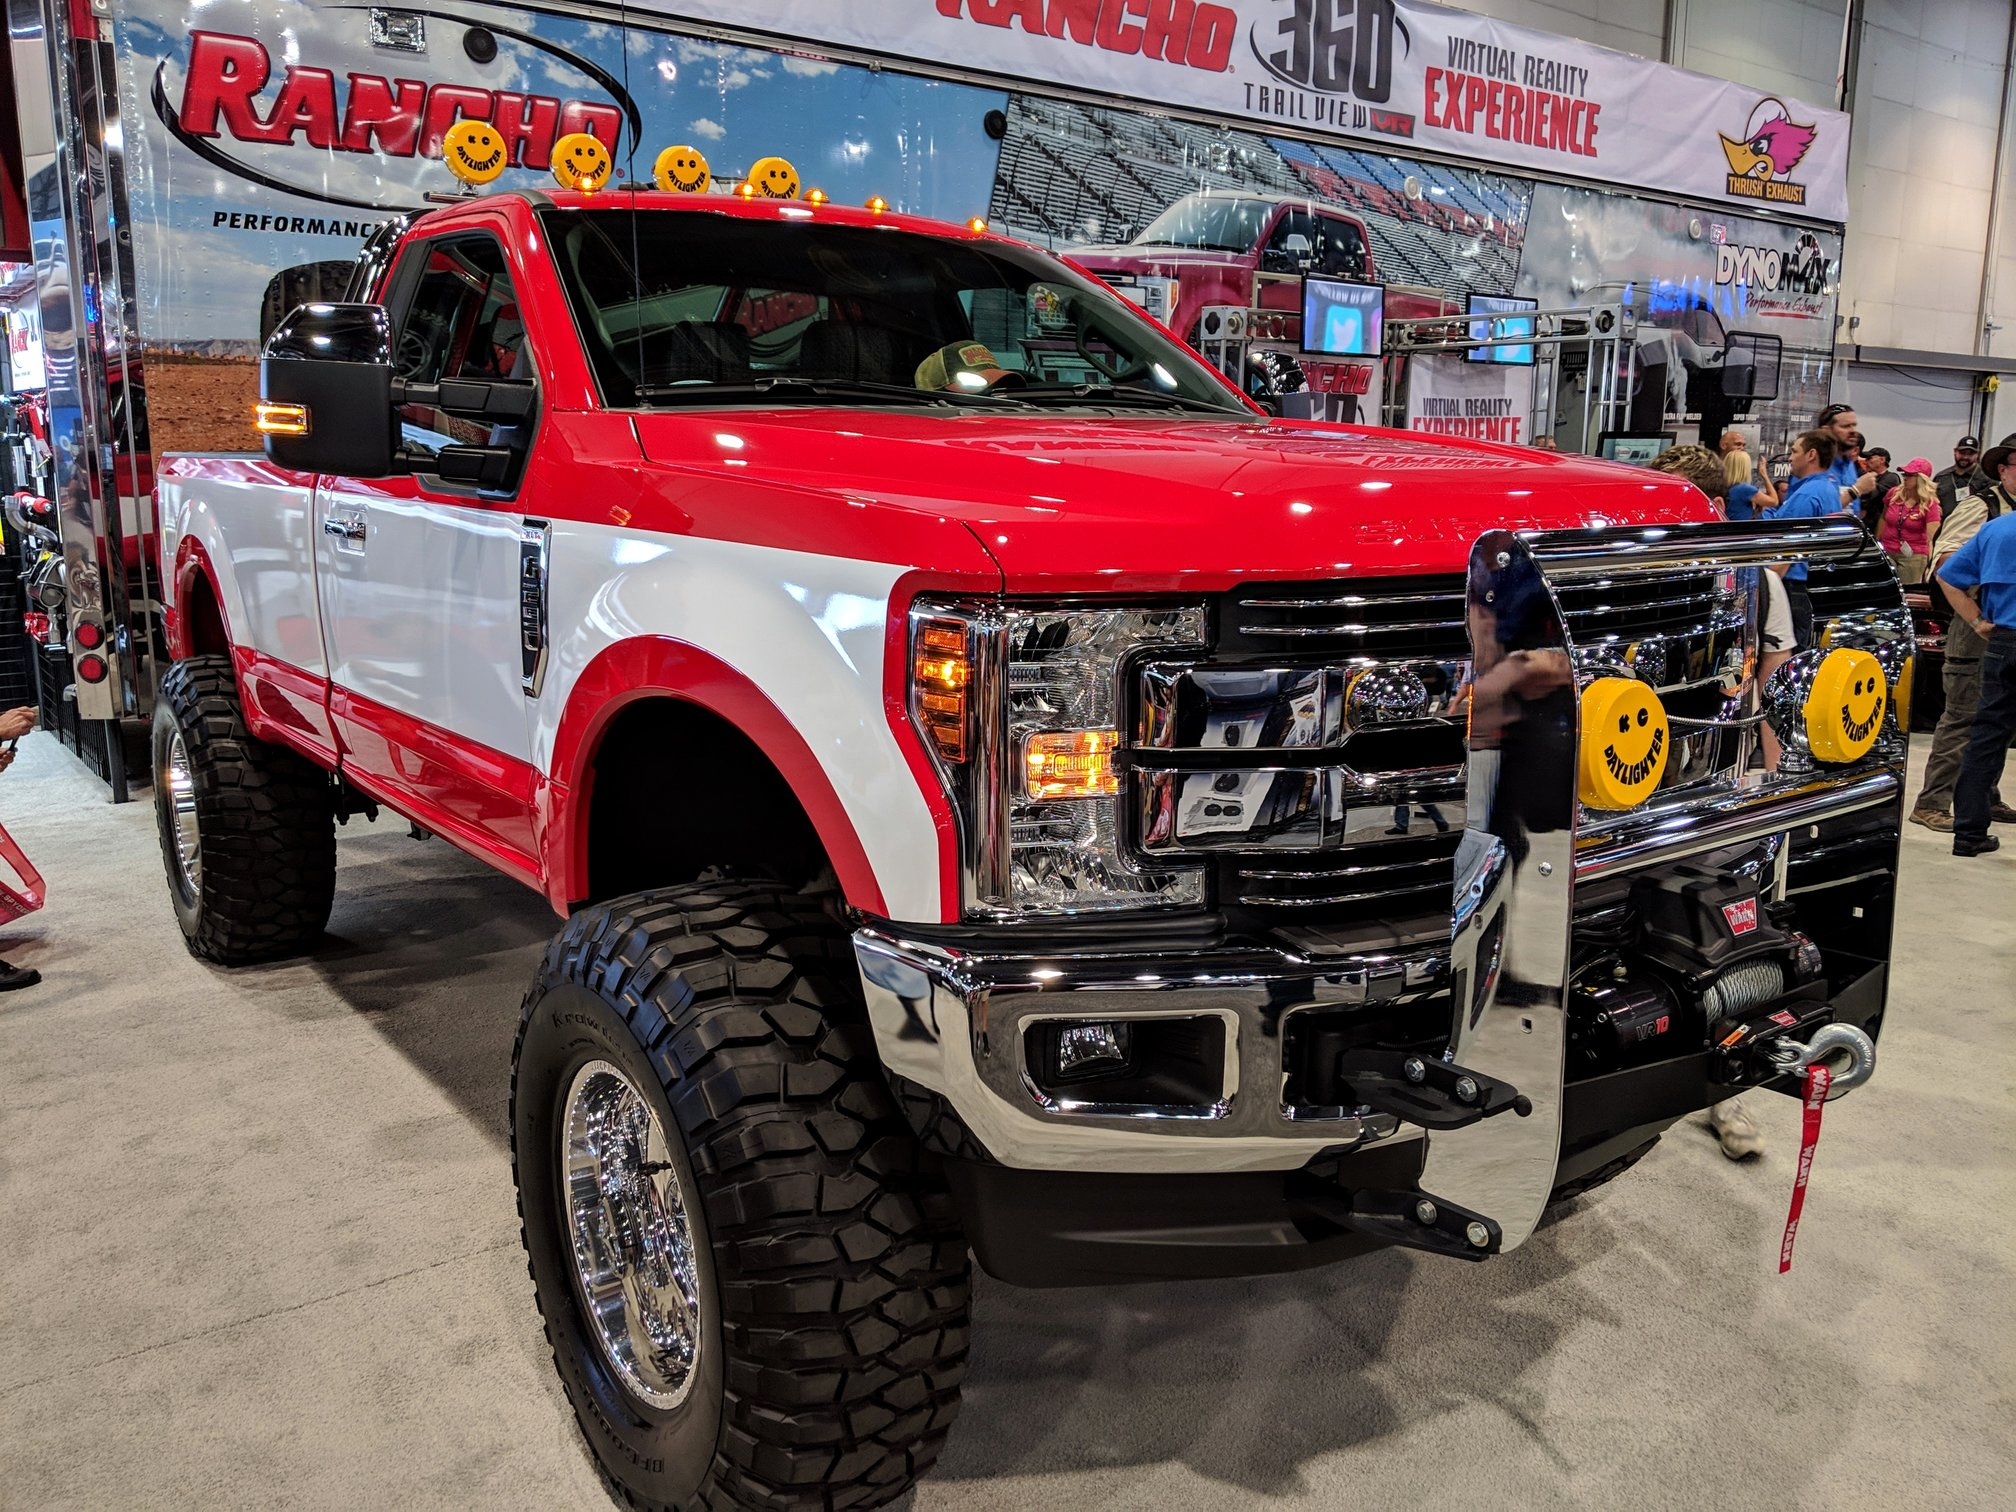 Ford F-250 Project TuTone by 4 Wheel Performance with KC lights at SEMA 2018